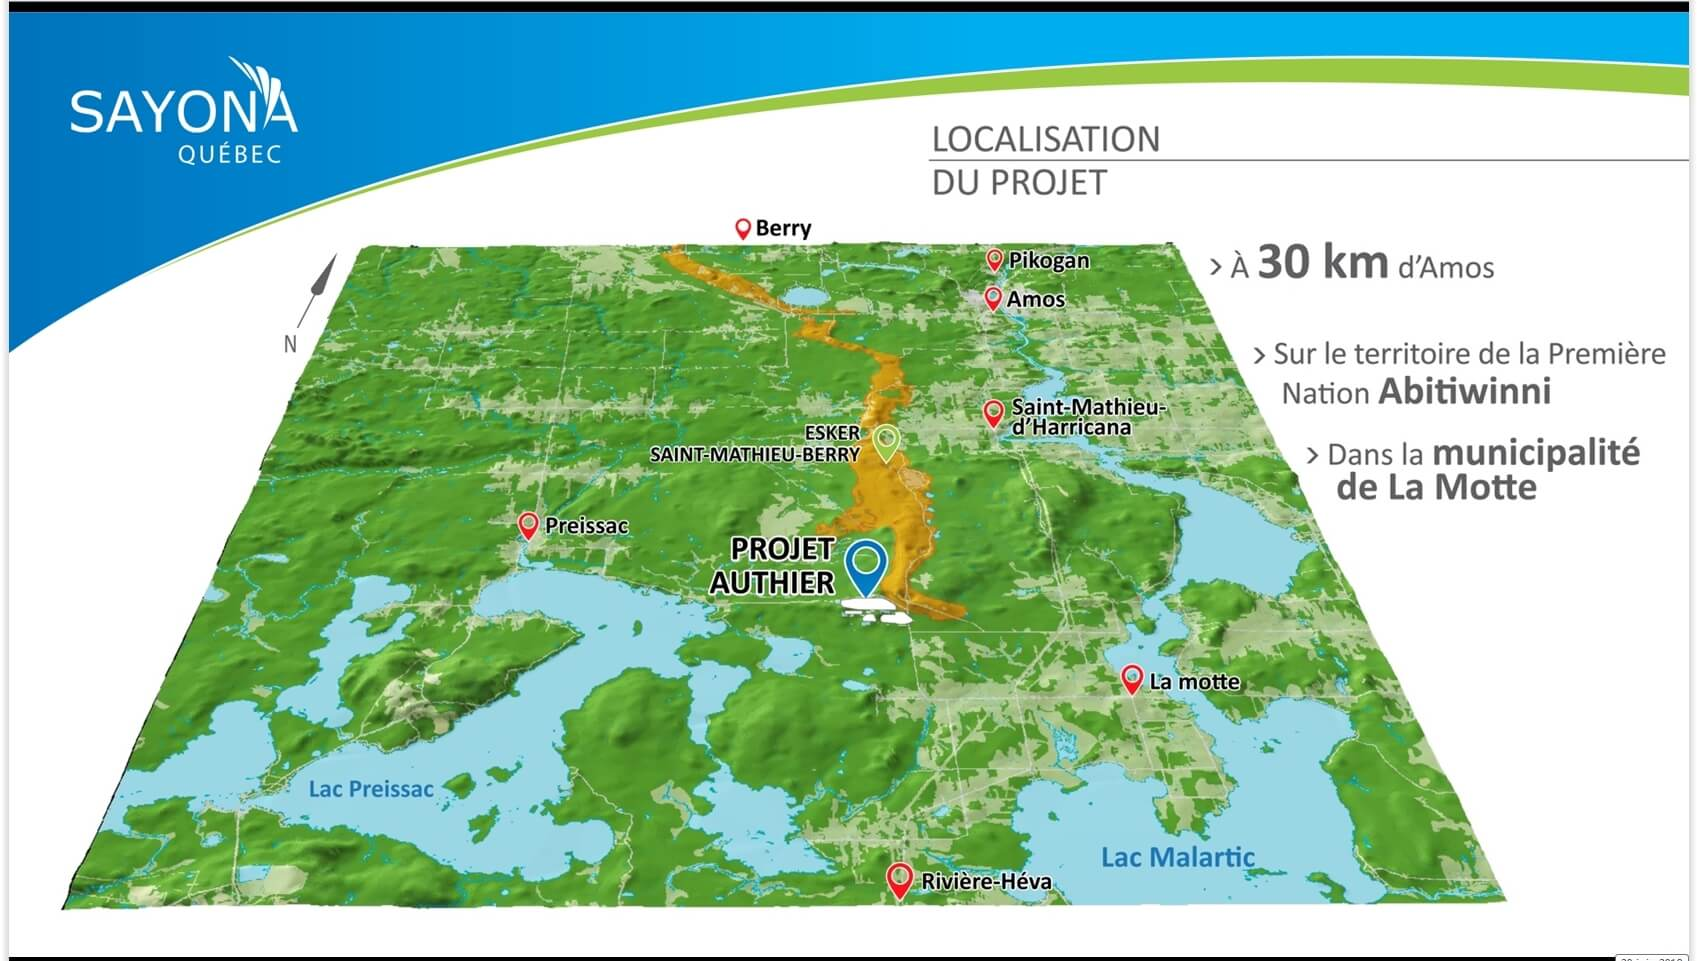 Sayona Projet Authier Localisation